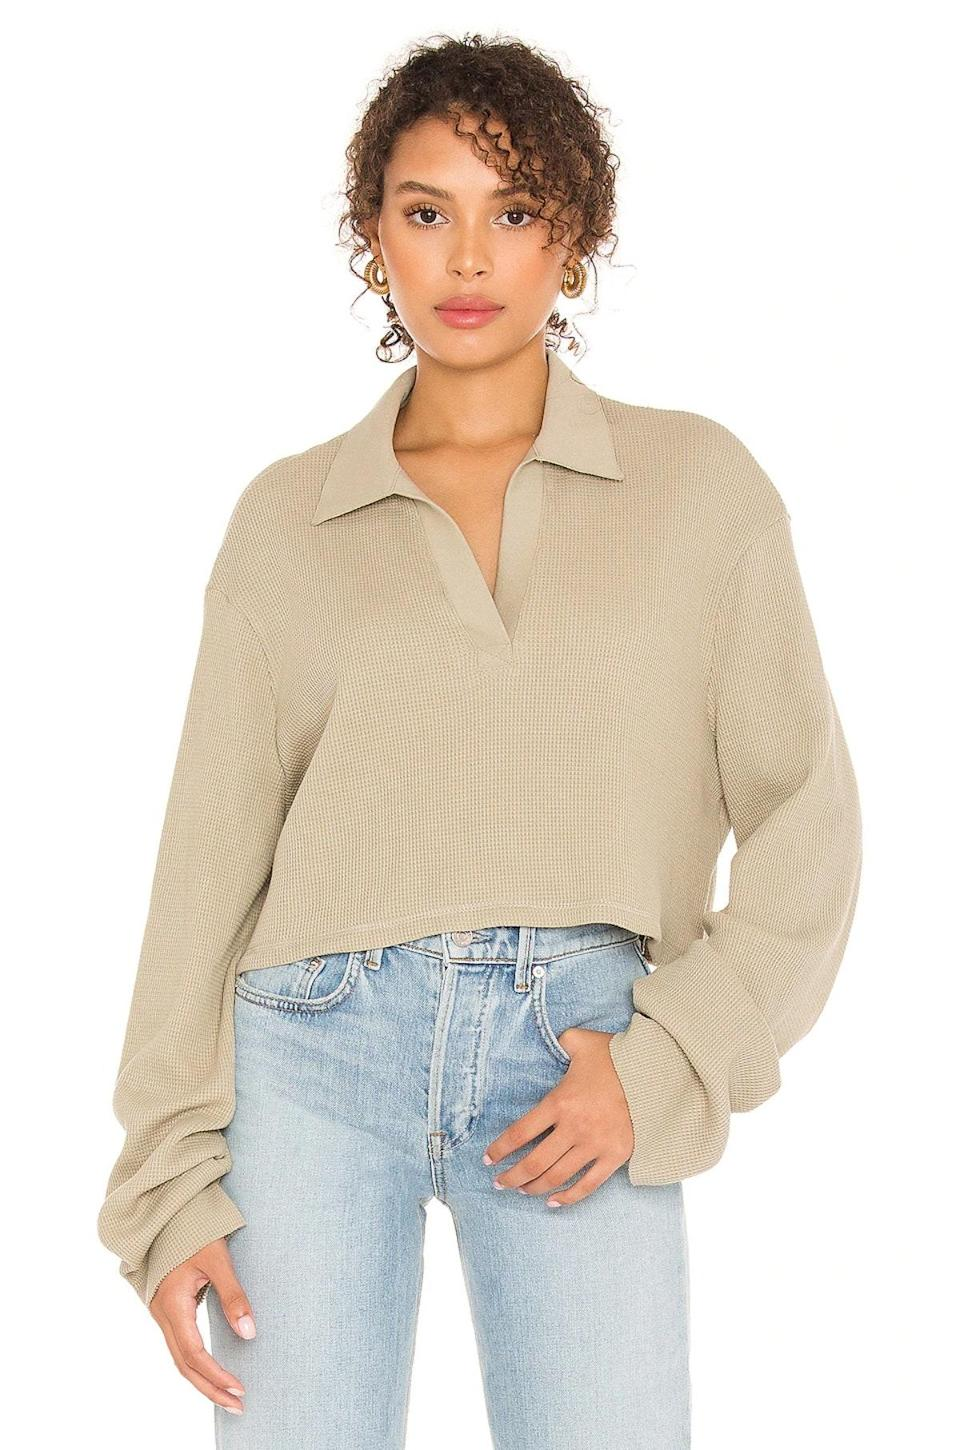 """If you're deep into the polo trend, you'll love this version from The Range. The waffle-knit texture is super-cozy, and the exaggerated sleeves will keep your hands warm as you sip a maple latte outside your neighborhood café. $155, Revolve. <a href=""""https://www.revolve.com/the-range-cropped-polo/dp/THRA-WS82/"""" rel=""""nofollow noopener"""" target=""""_blank"""" data-ylk=""""slk:Get it now!"""" class=""""link rapid-noclick-resp"""">Get it now!</a>"""